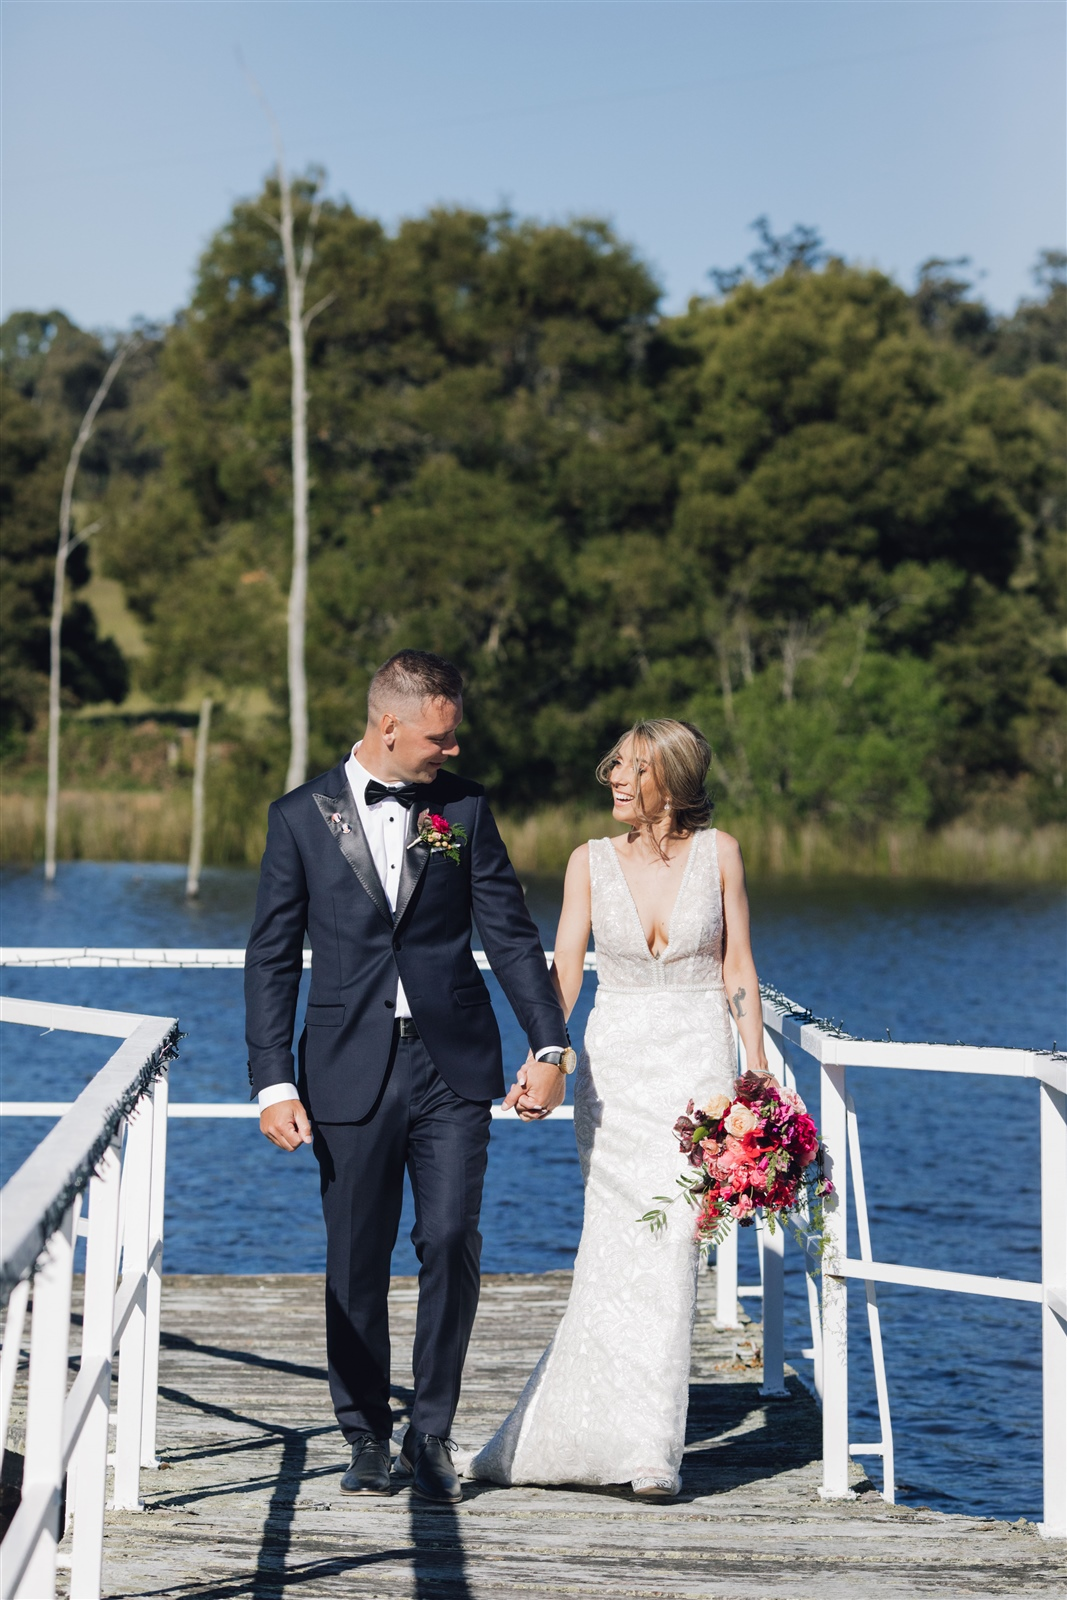 Wedding in Cammeray Waters